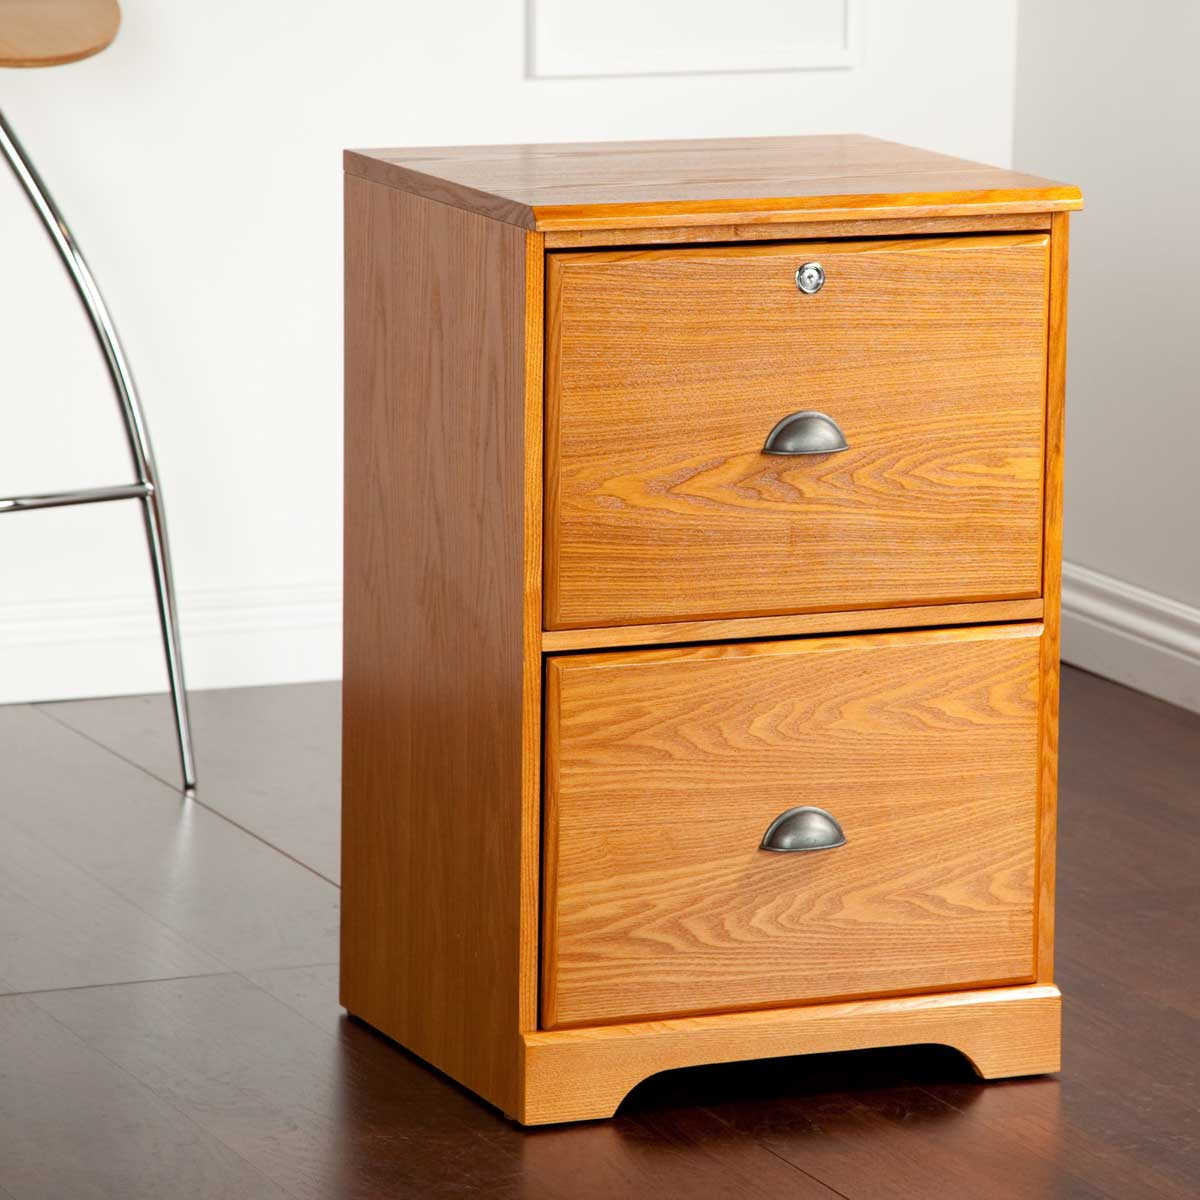 Modern Wood Filing Cabinet Ikea For Home Office Furniture Combined With  Wooden Floor Plus Stool Chair